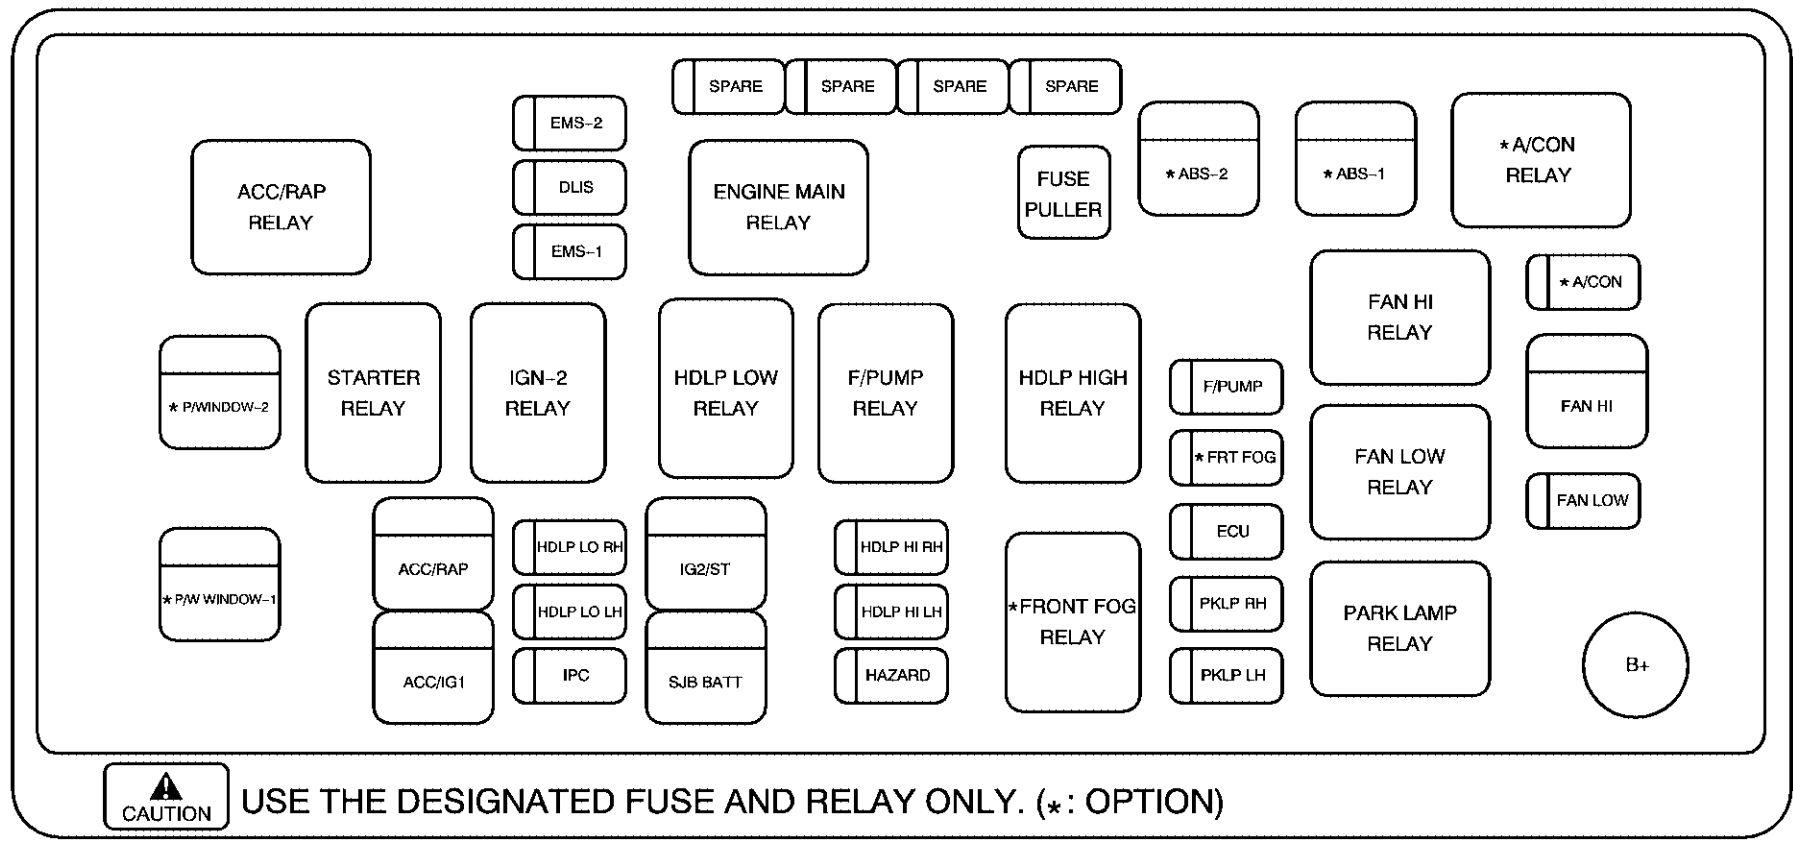 small resolution of chevrolet aveo fuse box diagram wiring diagram show2009 chevy aveo fuse diagram wiring diagram rows 2009